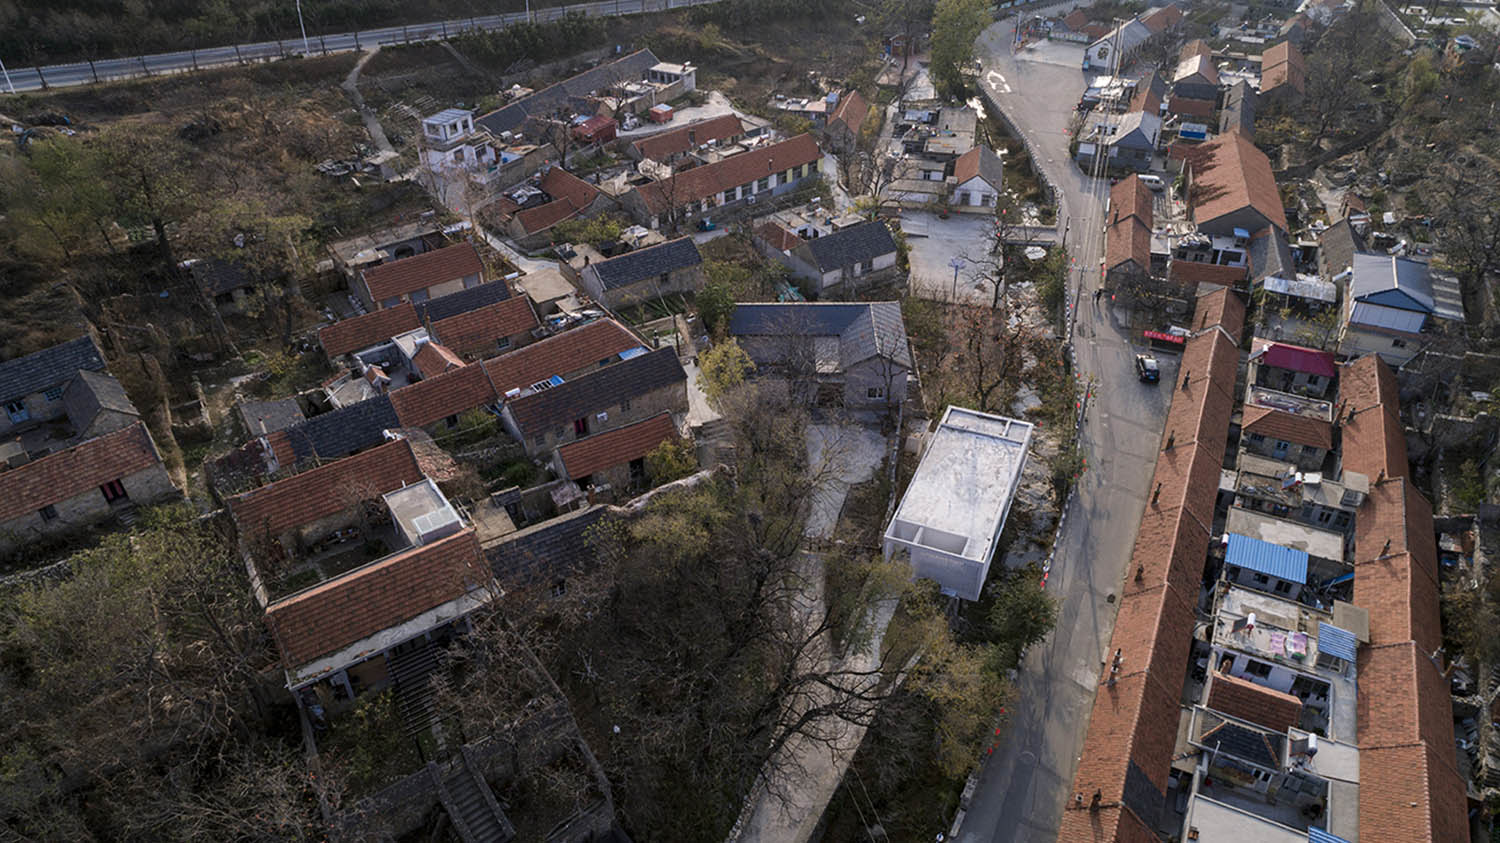 (Mica-Bar) Aerial view of Mica-Bar,New residents surrounded by ancient dwellings Jin Weiqi